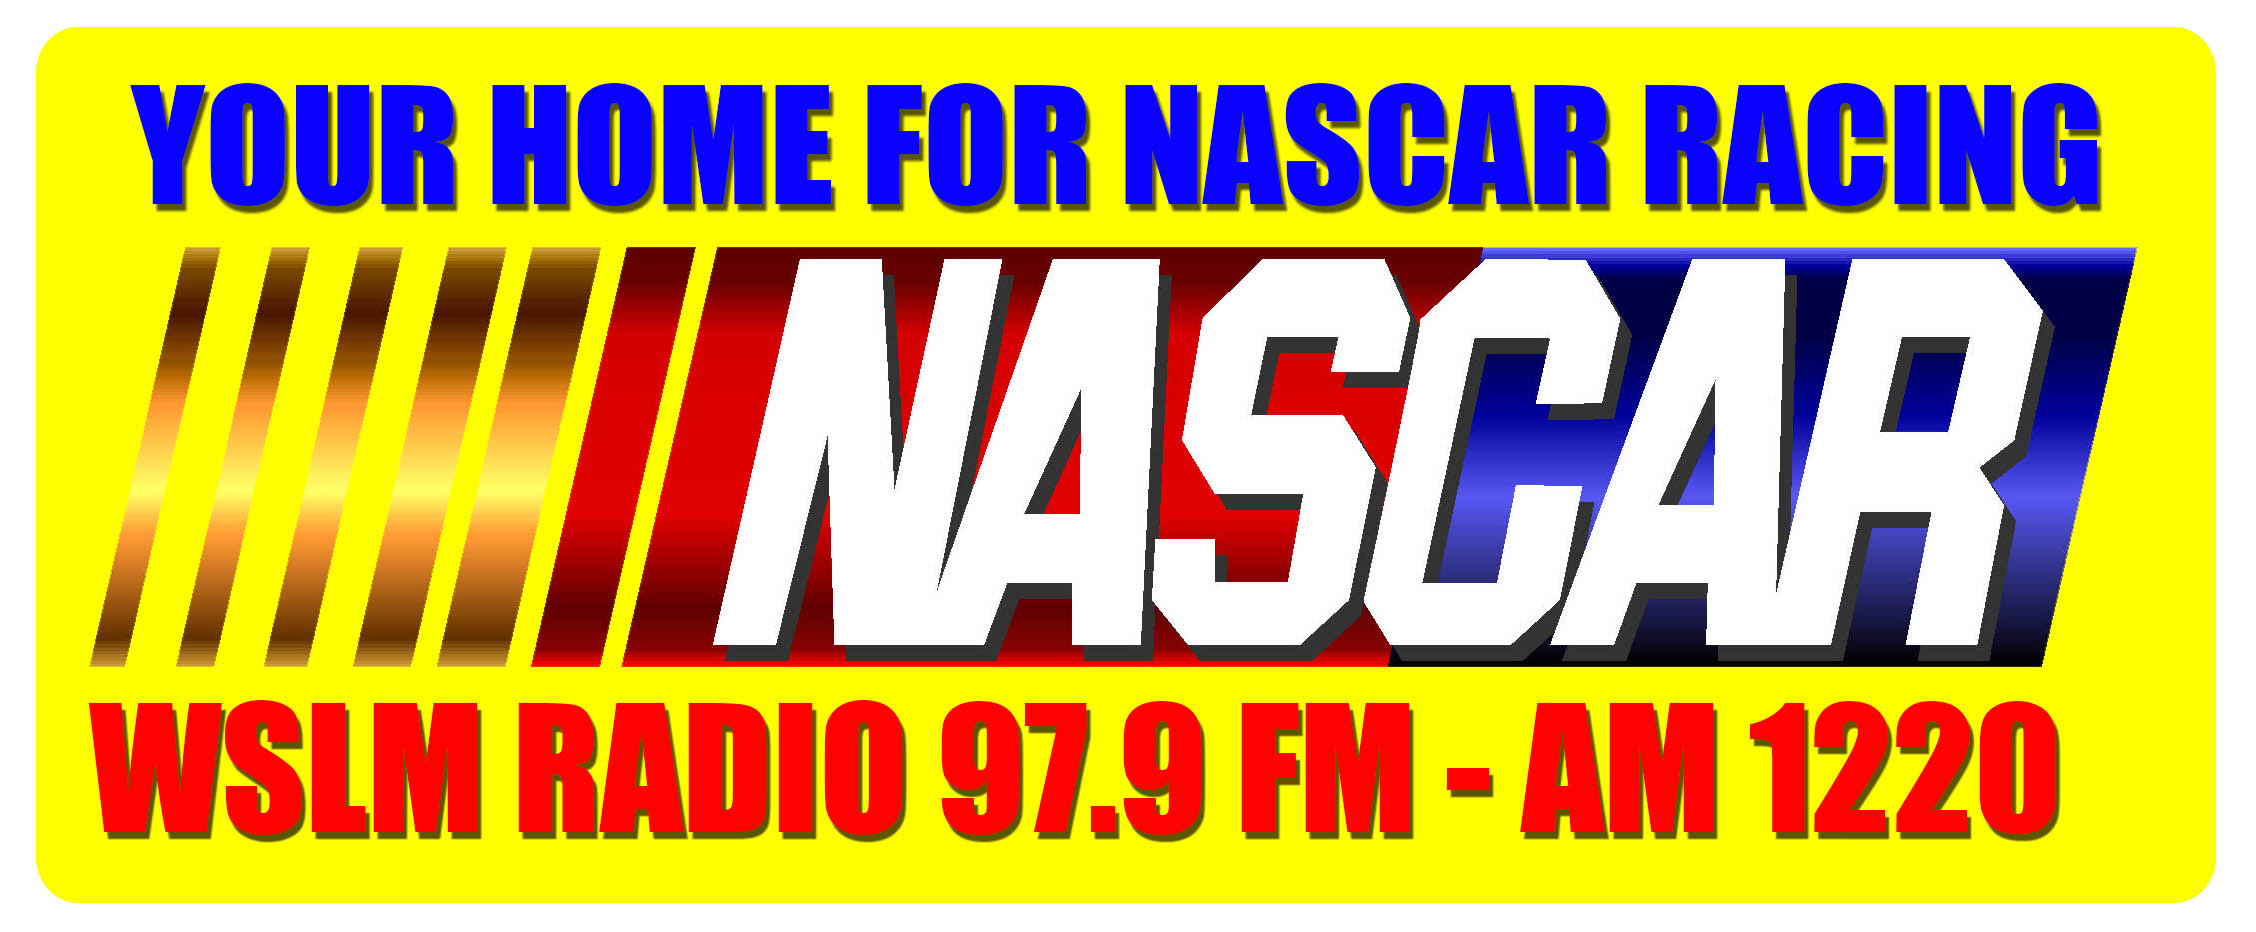 Your Kentuckiana NASCAR station